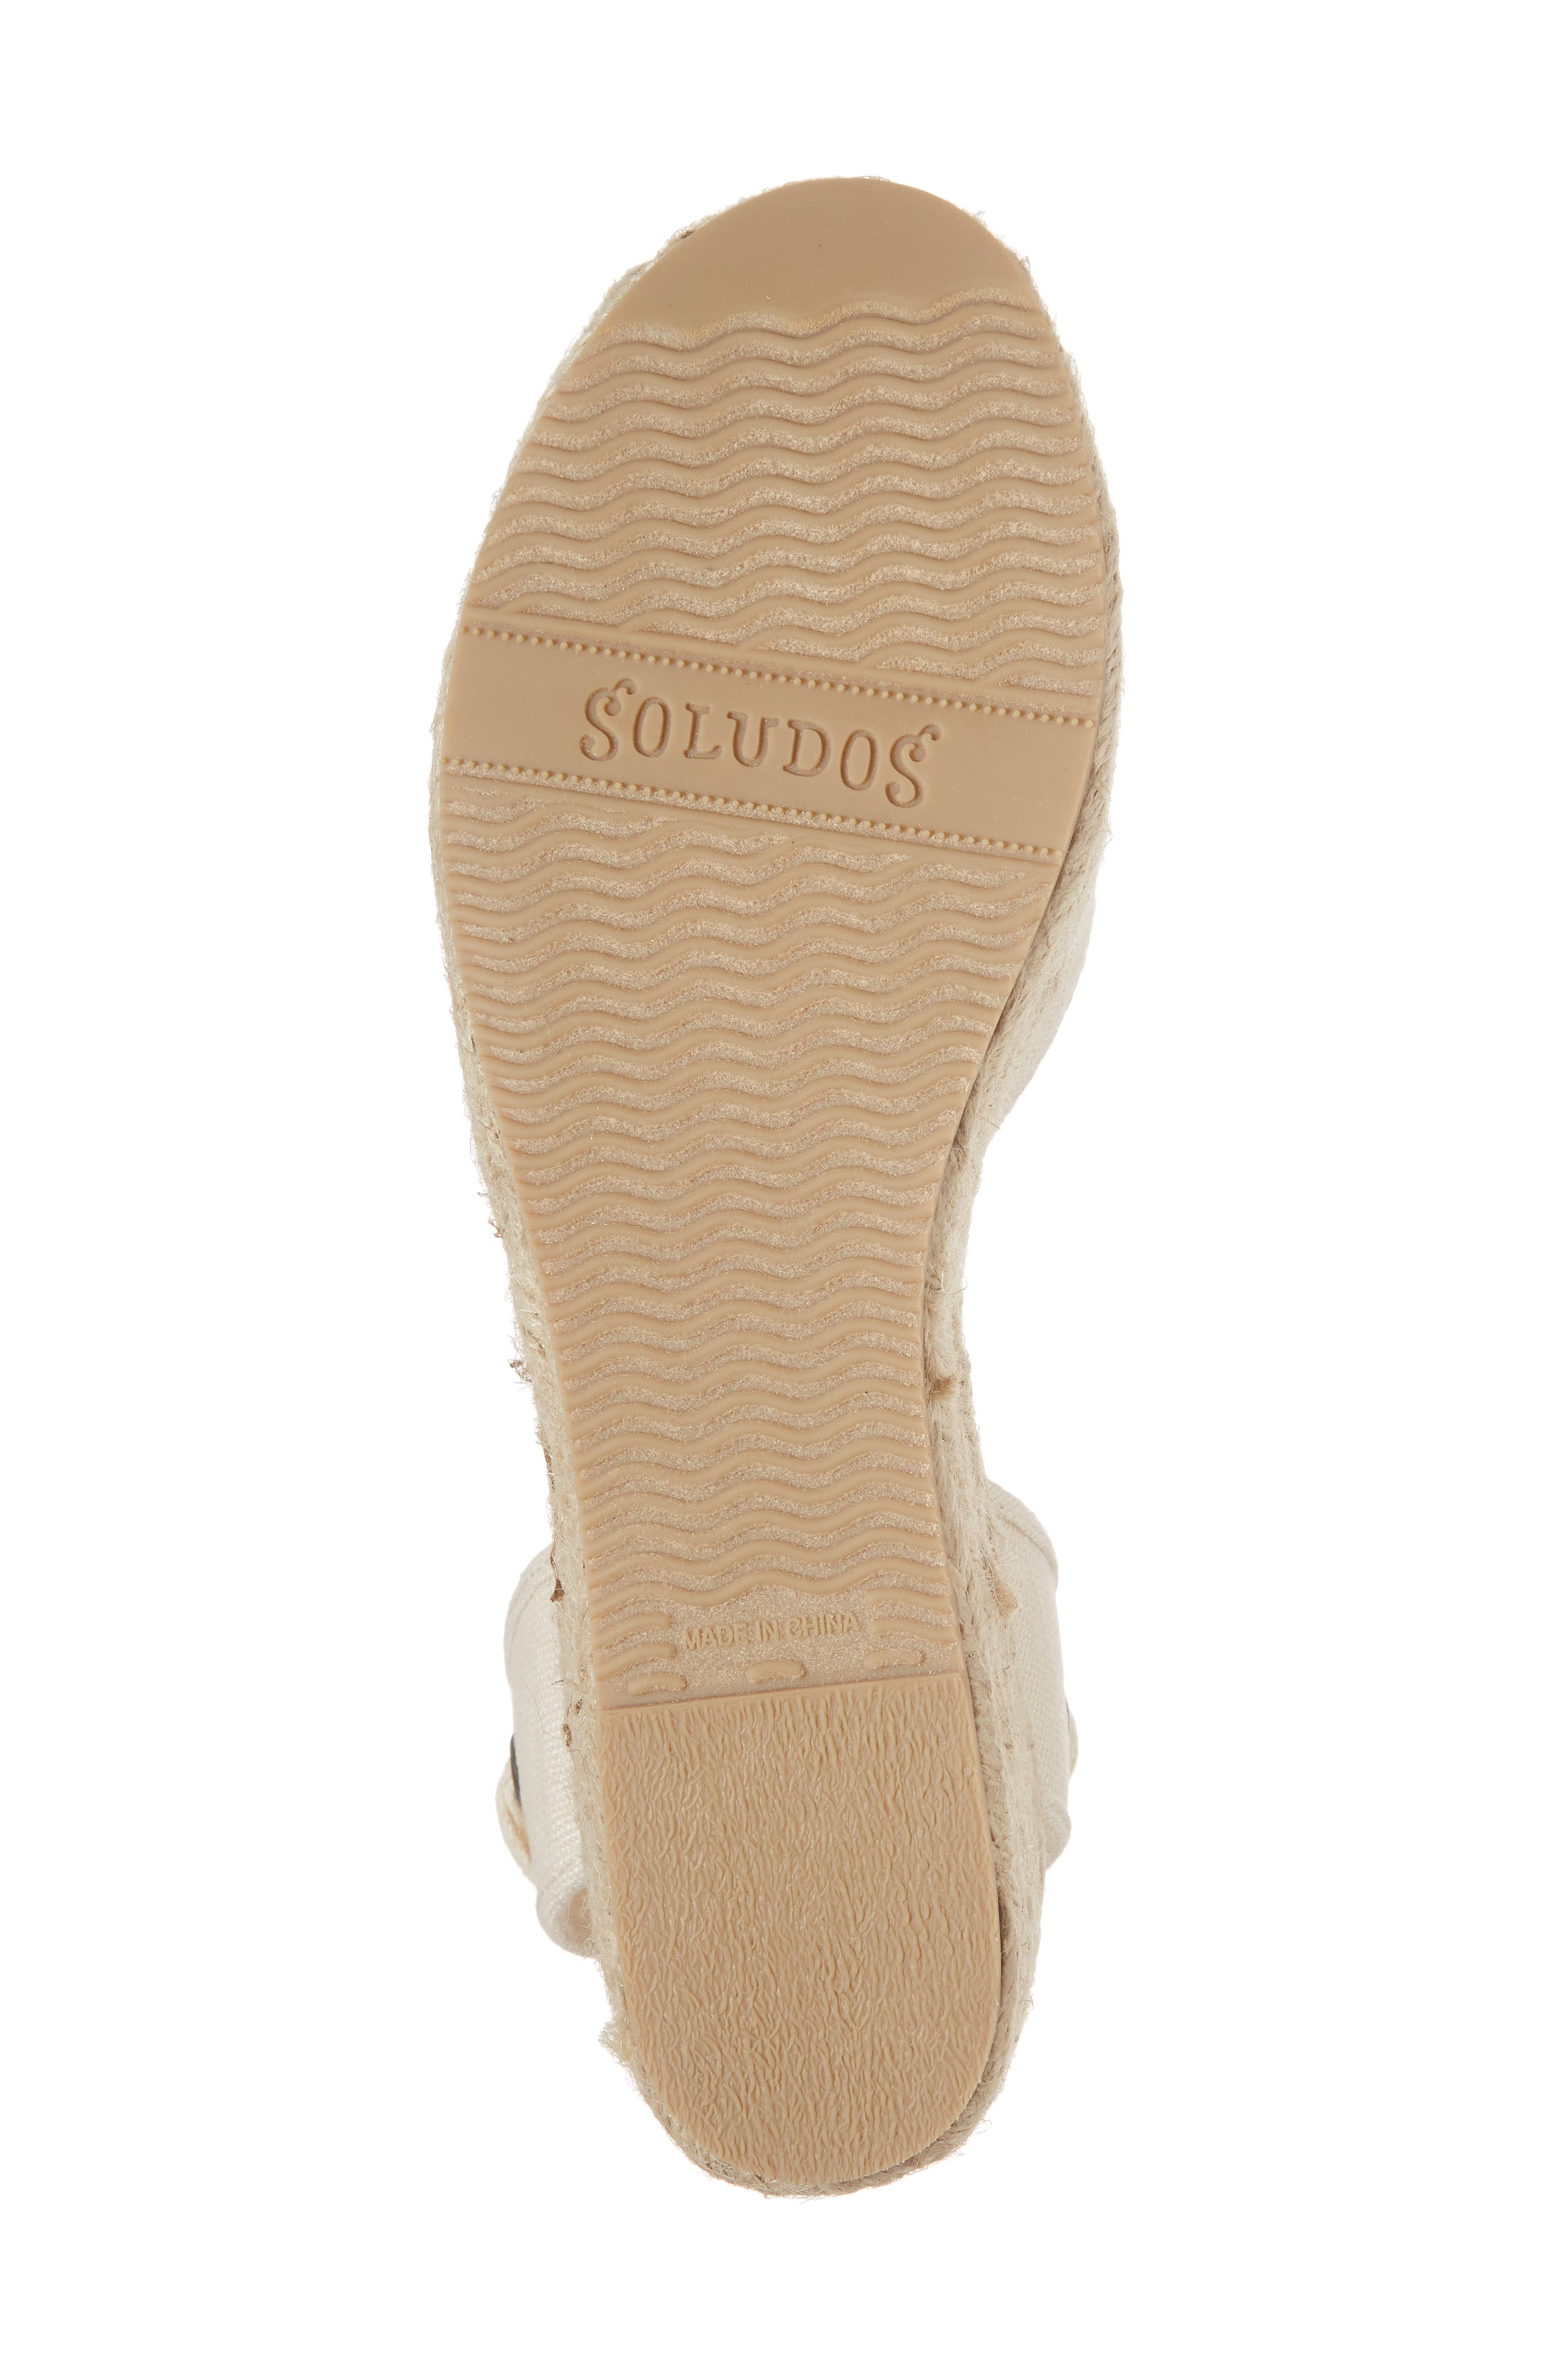 SOLUDOS, Espadrille Platform Sandal, Alternate thumbnail 6, color, BLUSH FABRIC